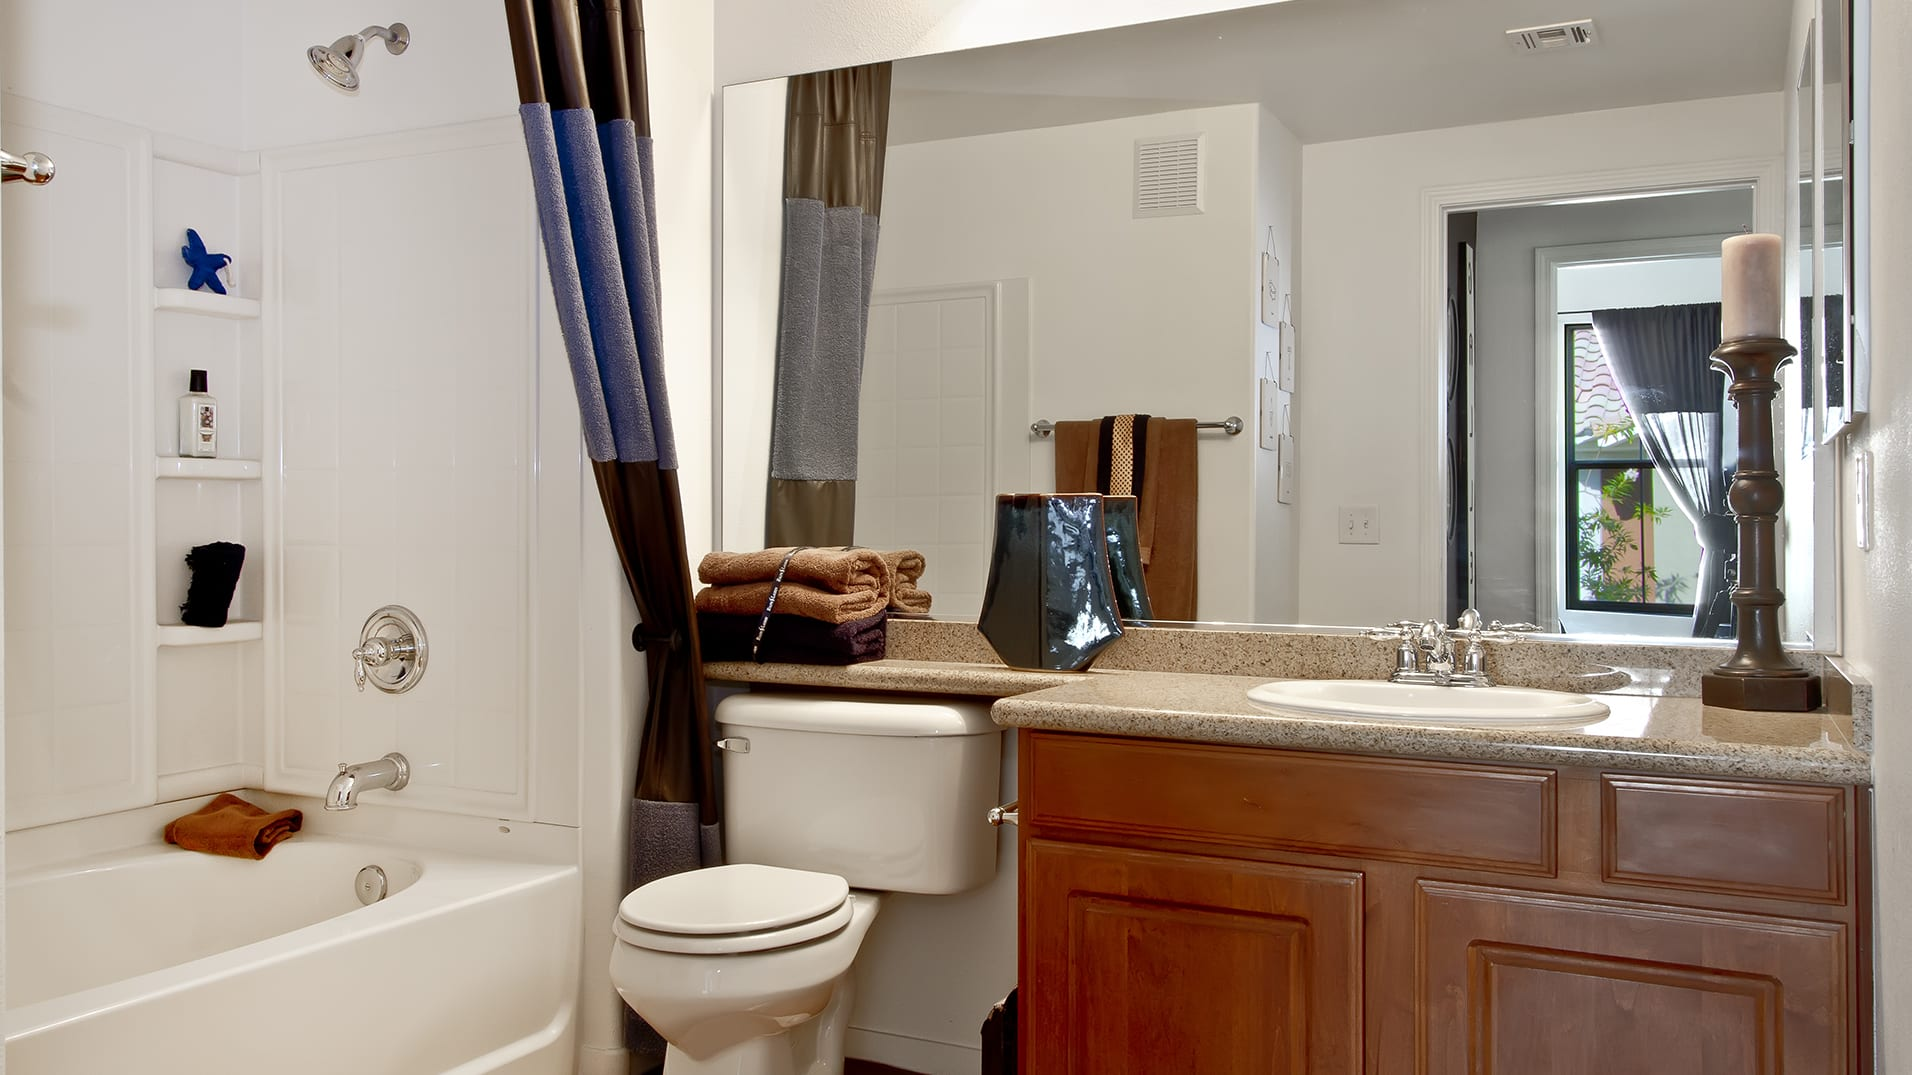 A bathroom with wood cabinets, smooth countertops, and a spacious shower.